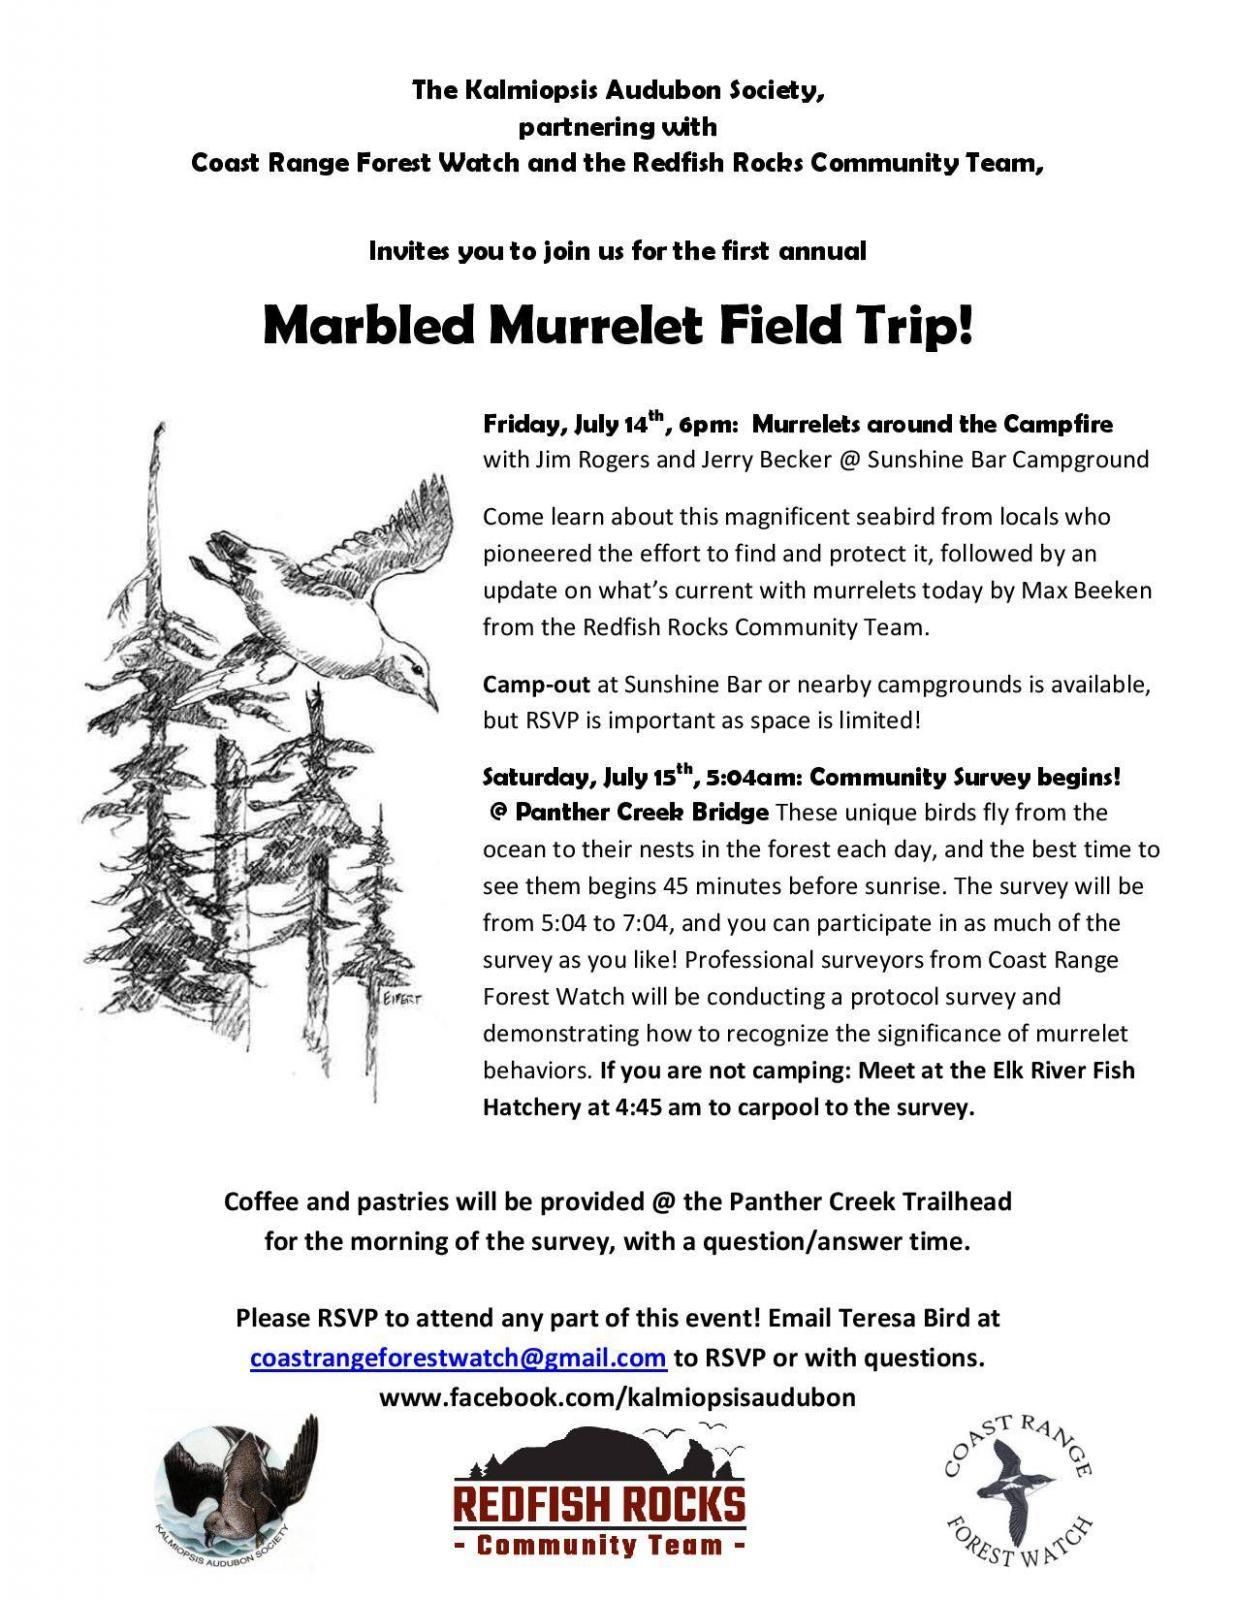 Marbled murrelet field trip flyer.